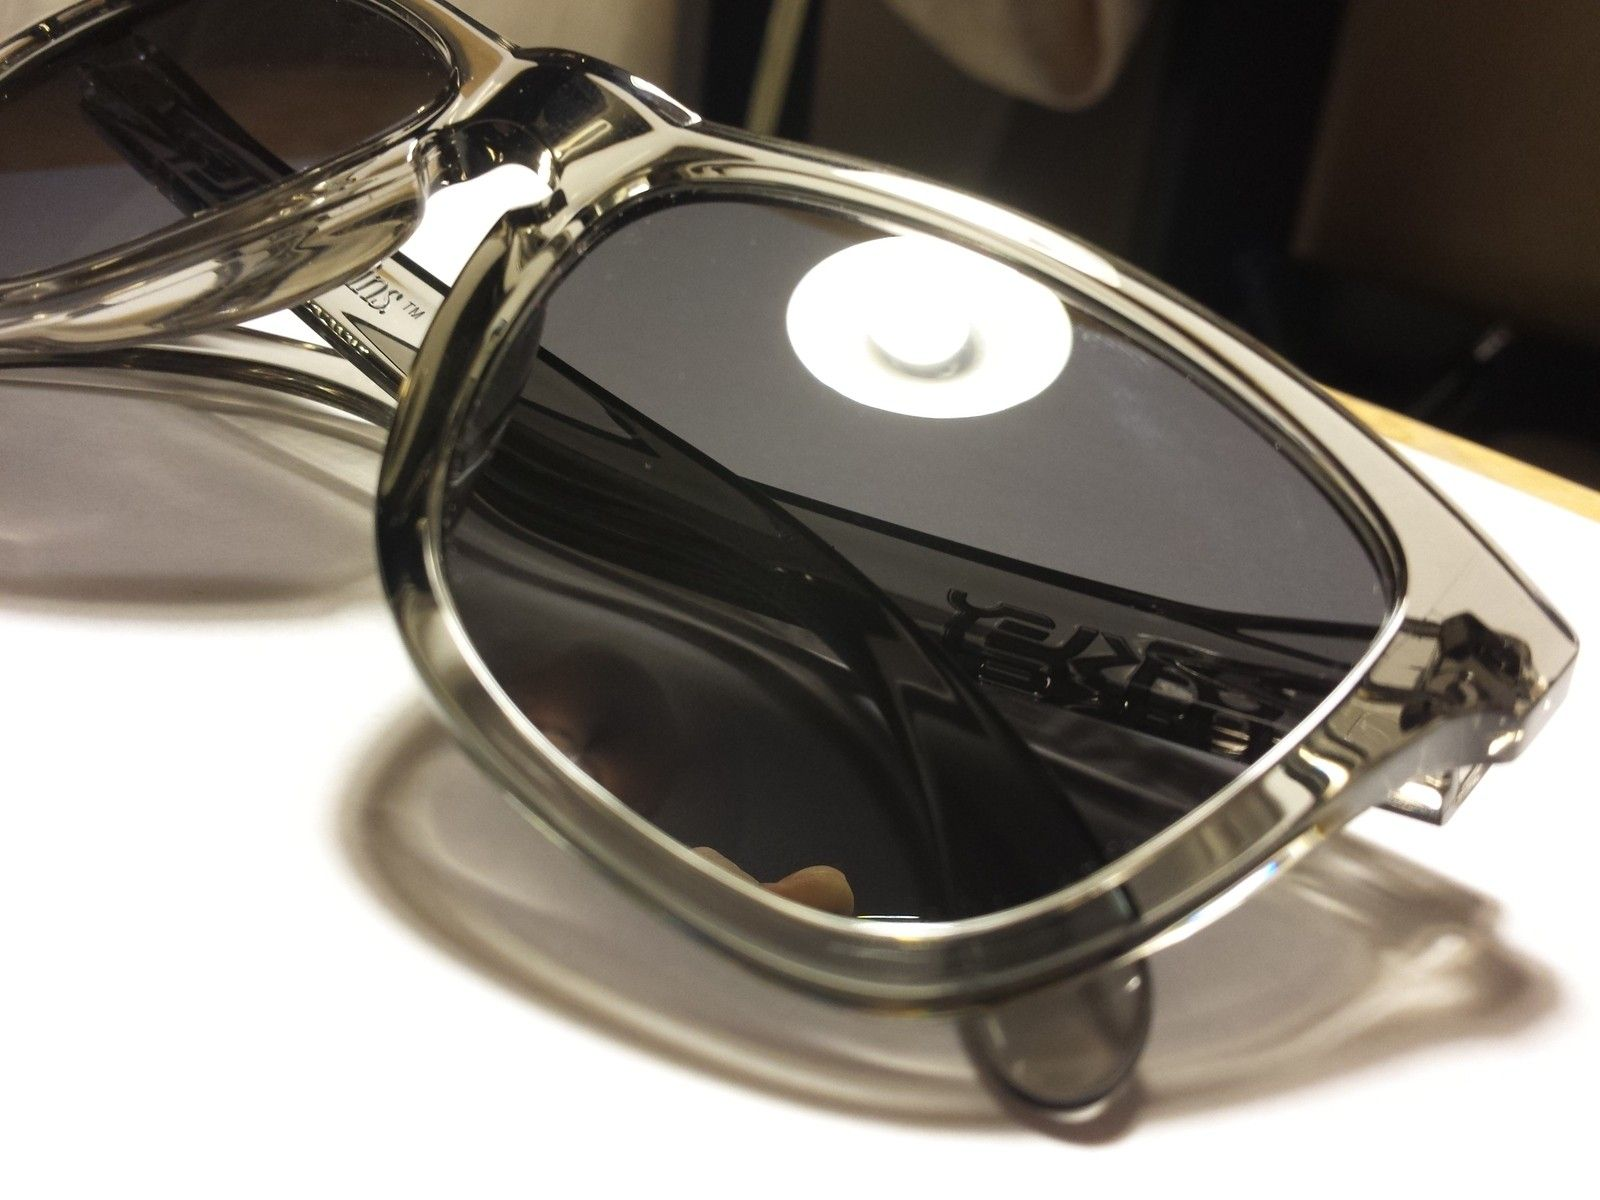 FSOT Ruby Frog Lenses - uploadfromtaptalk1435279571048.jpg